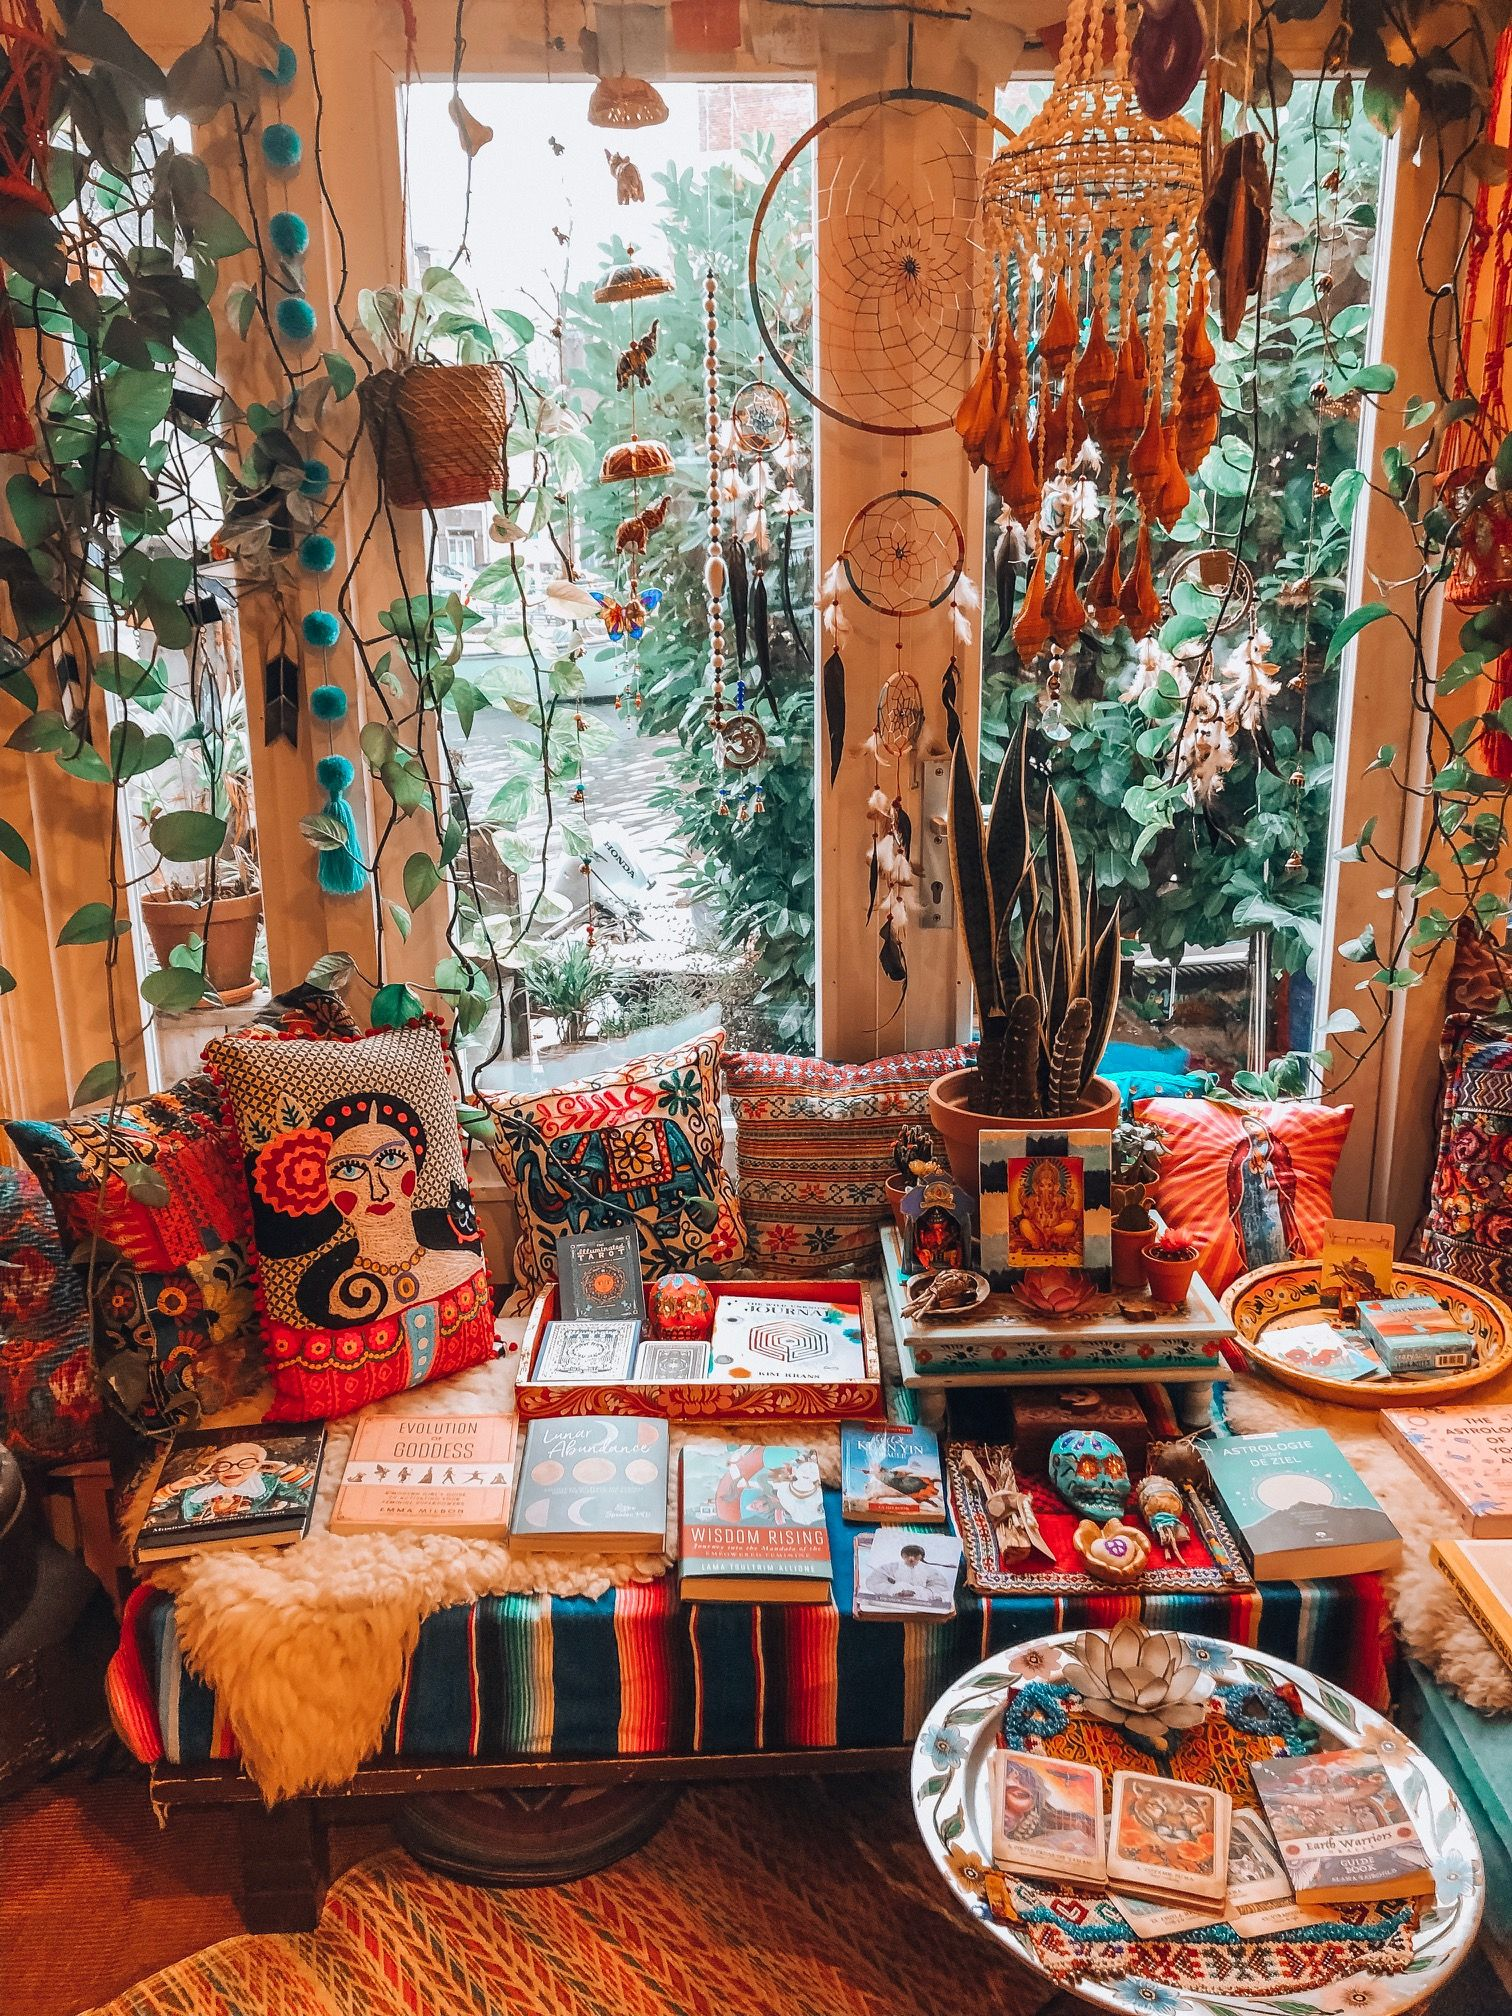 Inspiration from the cutest bohemian abode ever! Home decor at its best #bohemianhome